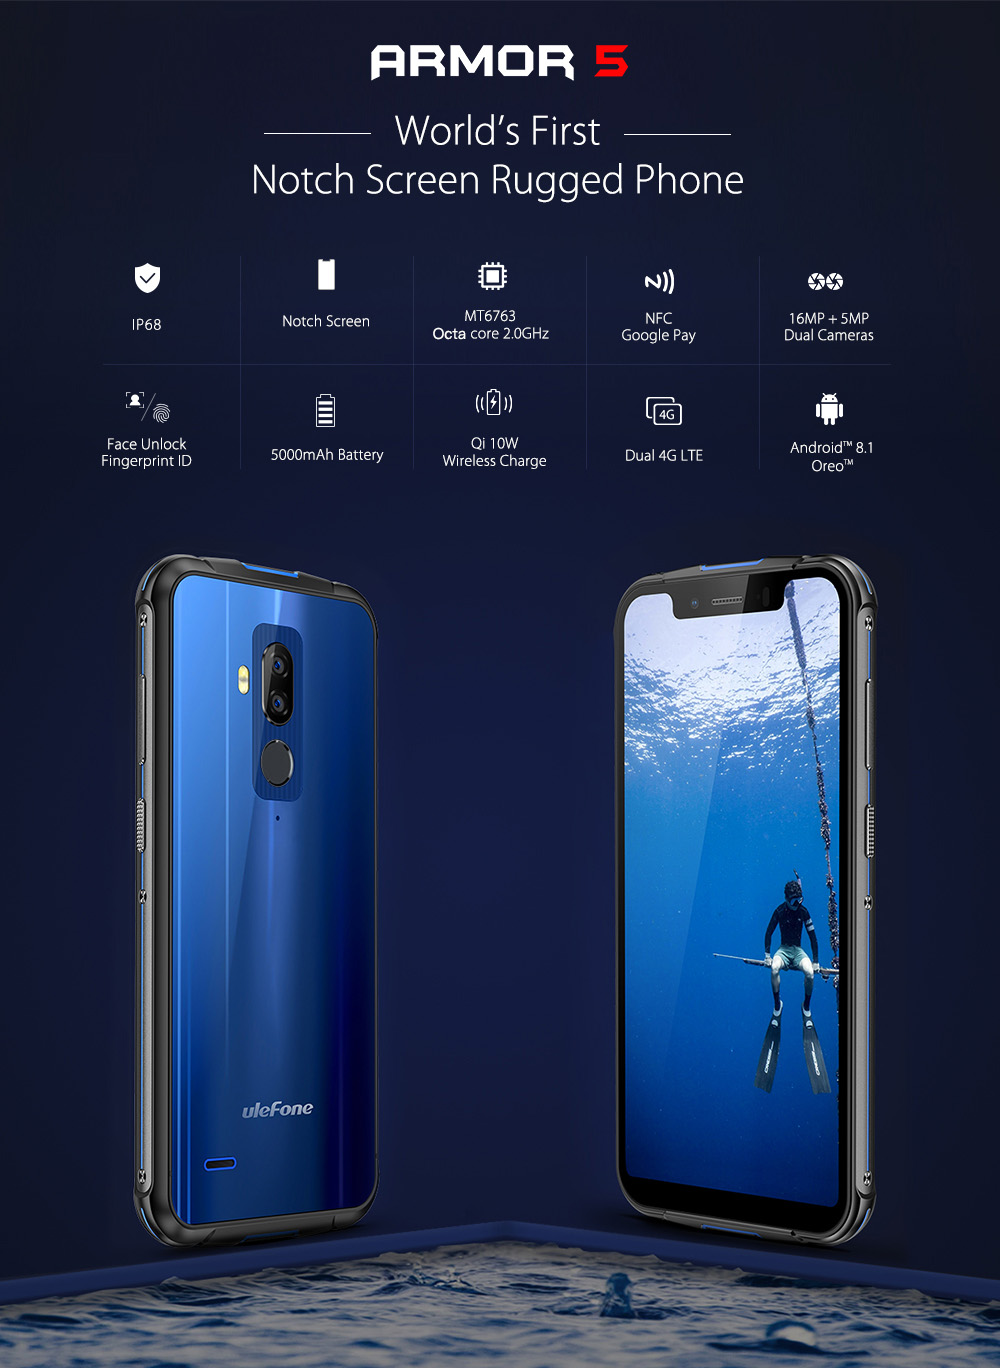 Ulefone Armor 5 4G Phablet 5.85 inch Android 8.1 Oreo MTK6763 Octa Core 2.0GHz 4GB RAM 64GB ROM 16.0MP + 5.0MP Rear Camera Fingerprint Sensor 5000mAh Built-in- Blue